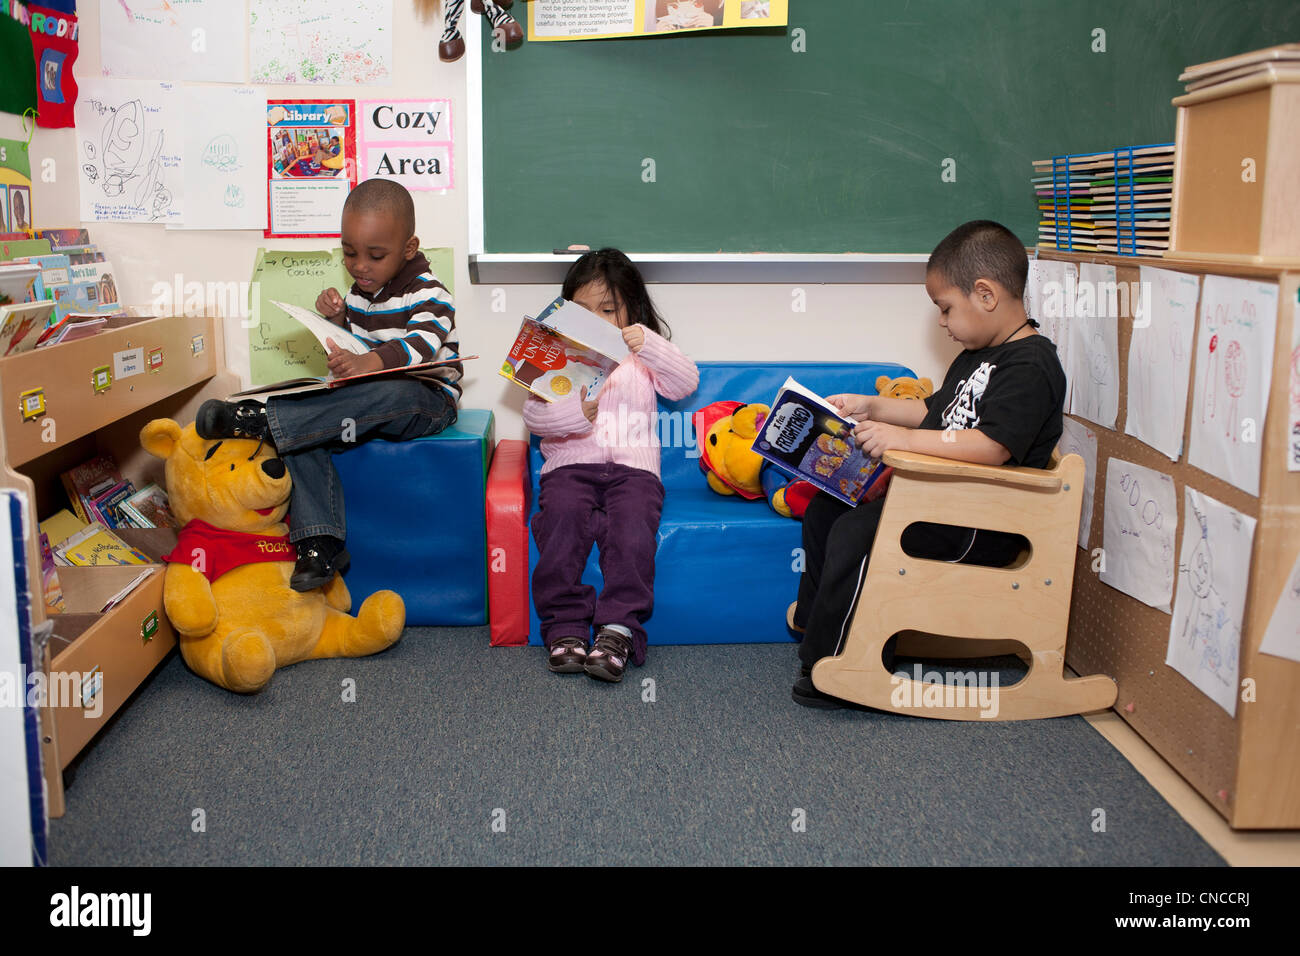 Preschool children in classroom Stock Photo